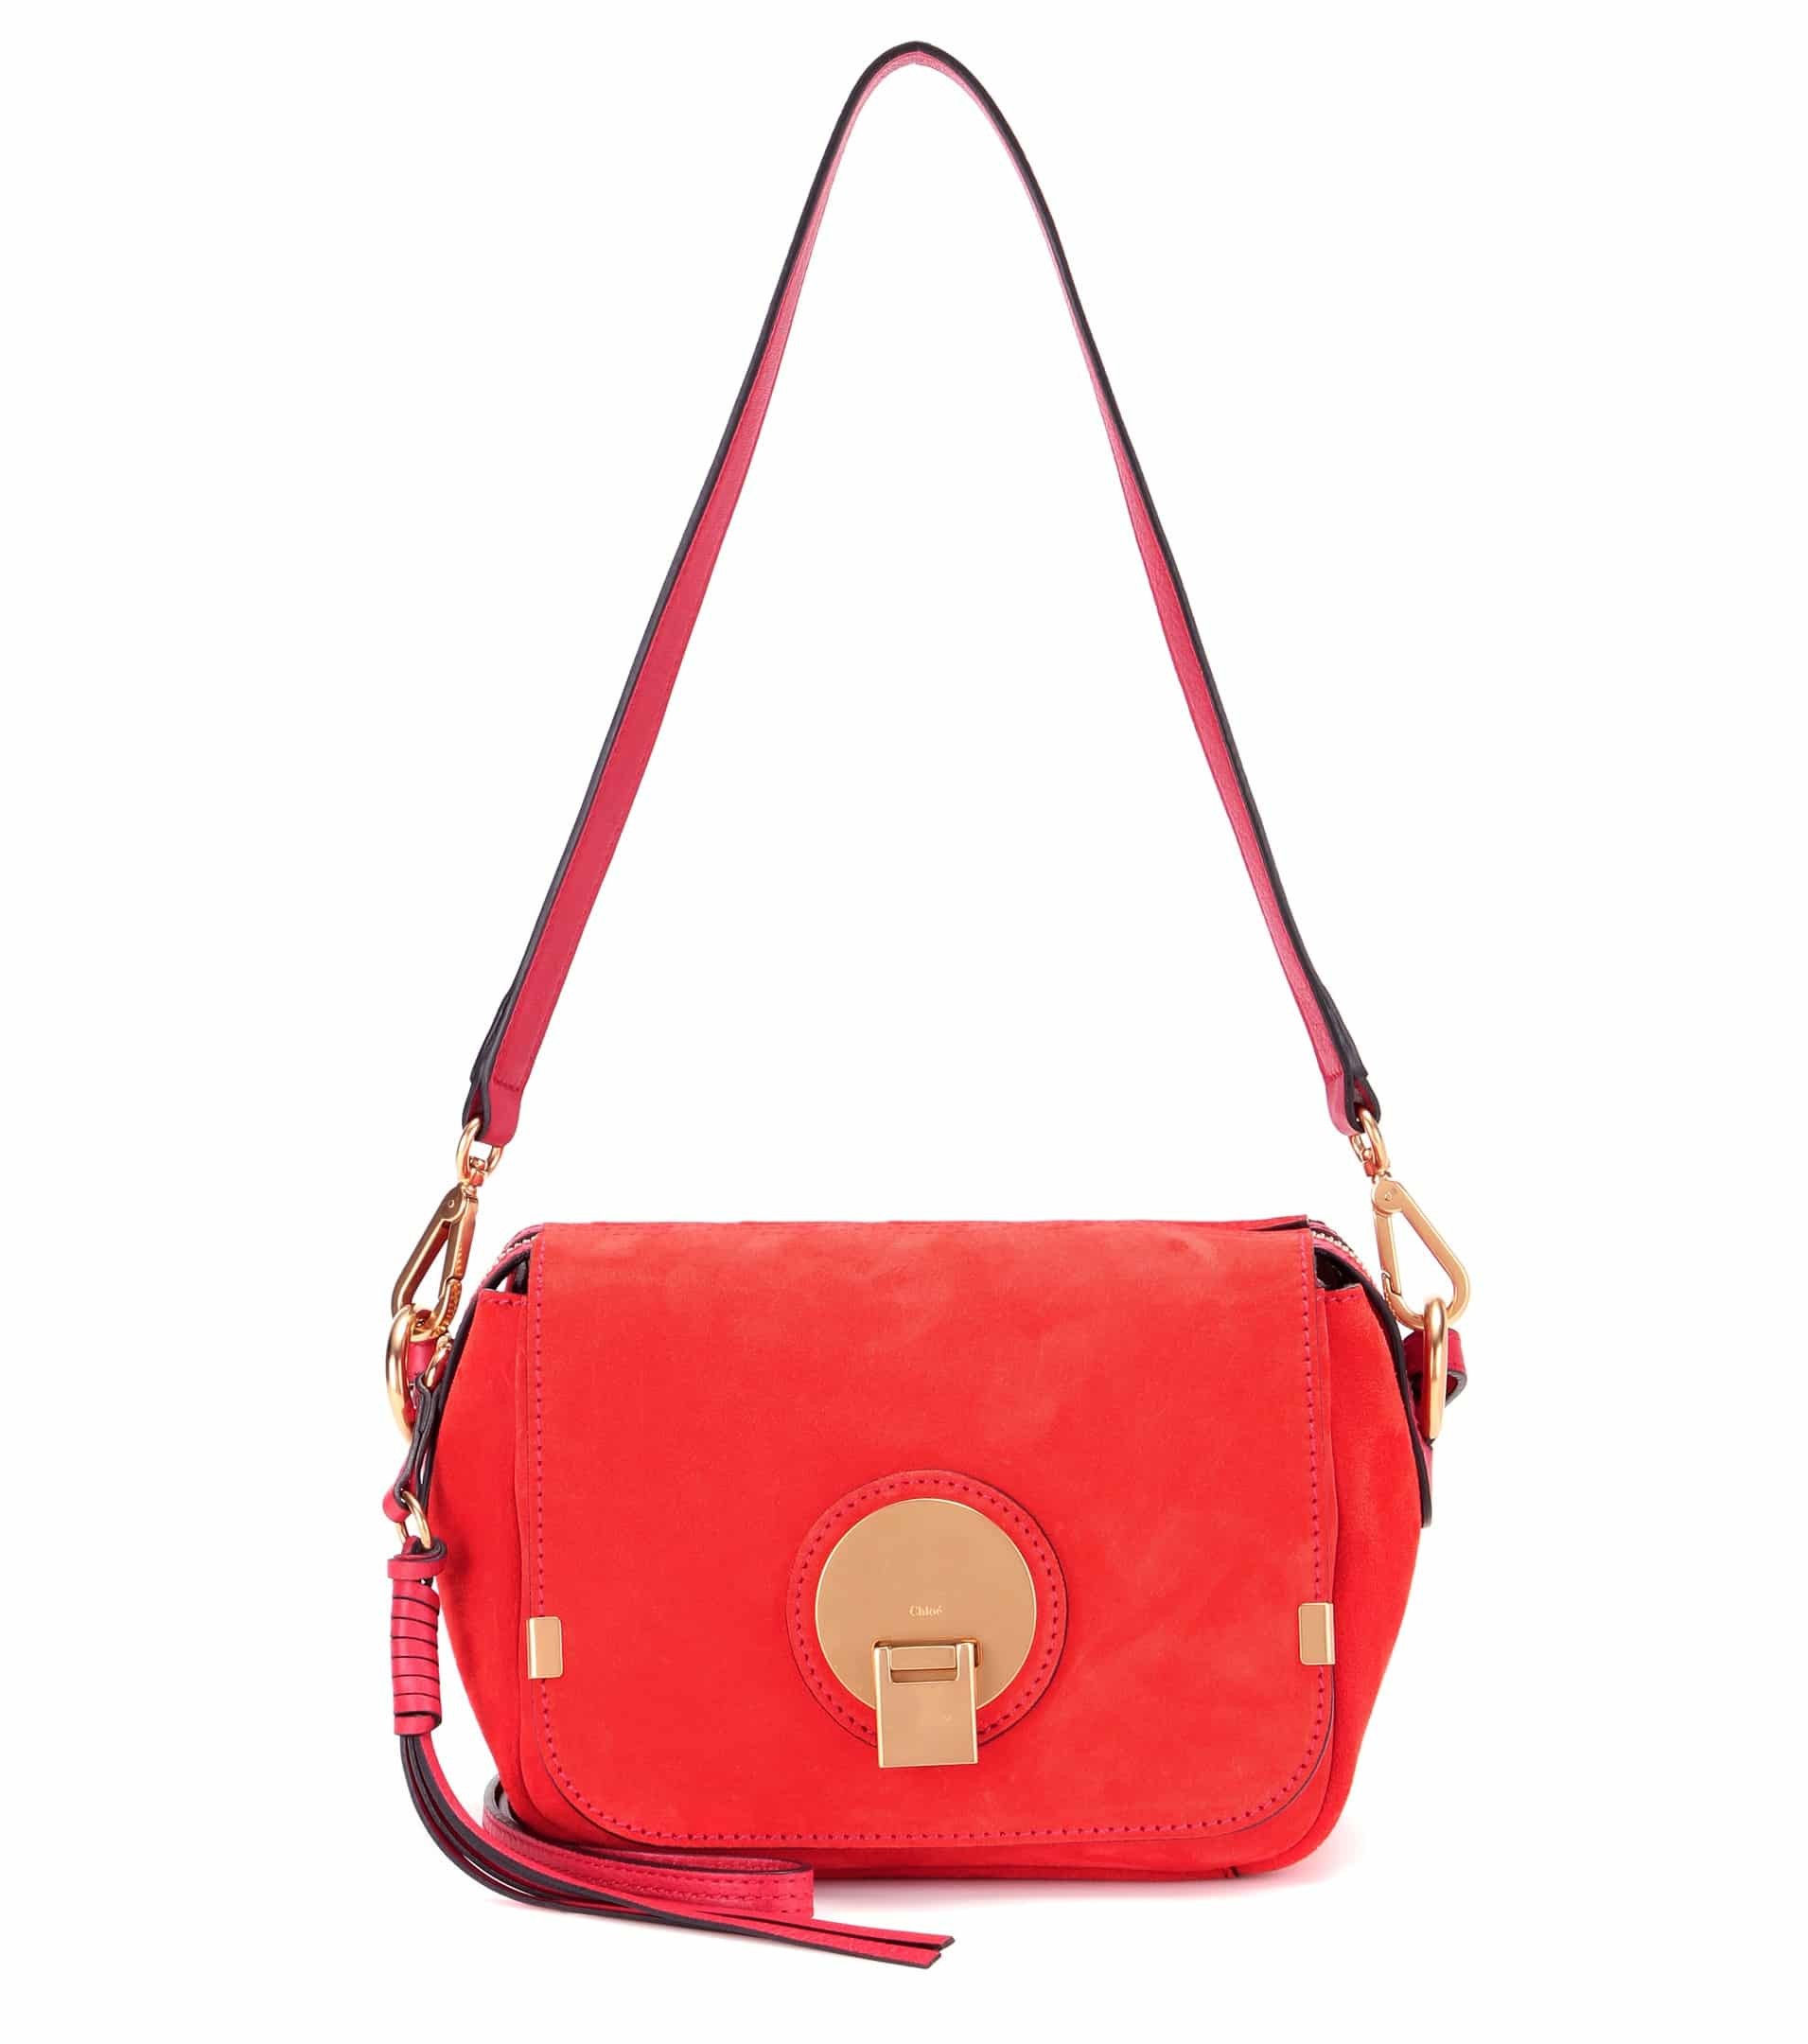 where to buy chloe handbags - chloe indy small leather shoulder bag, chloe online shop